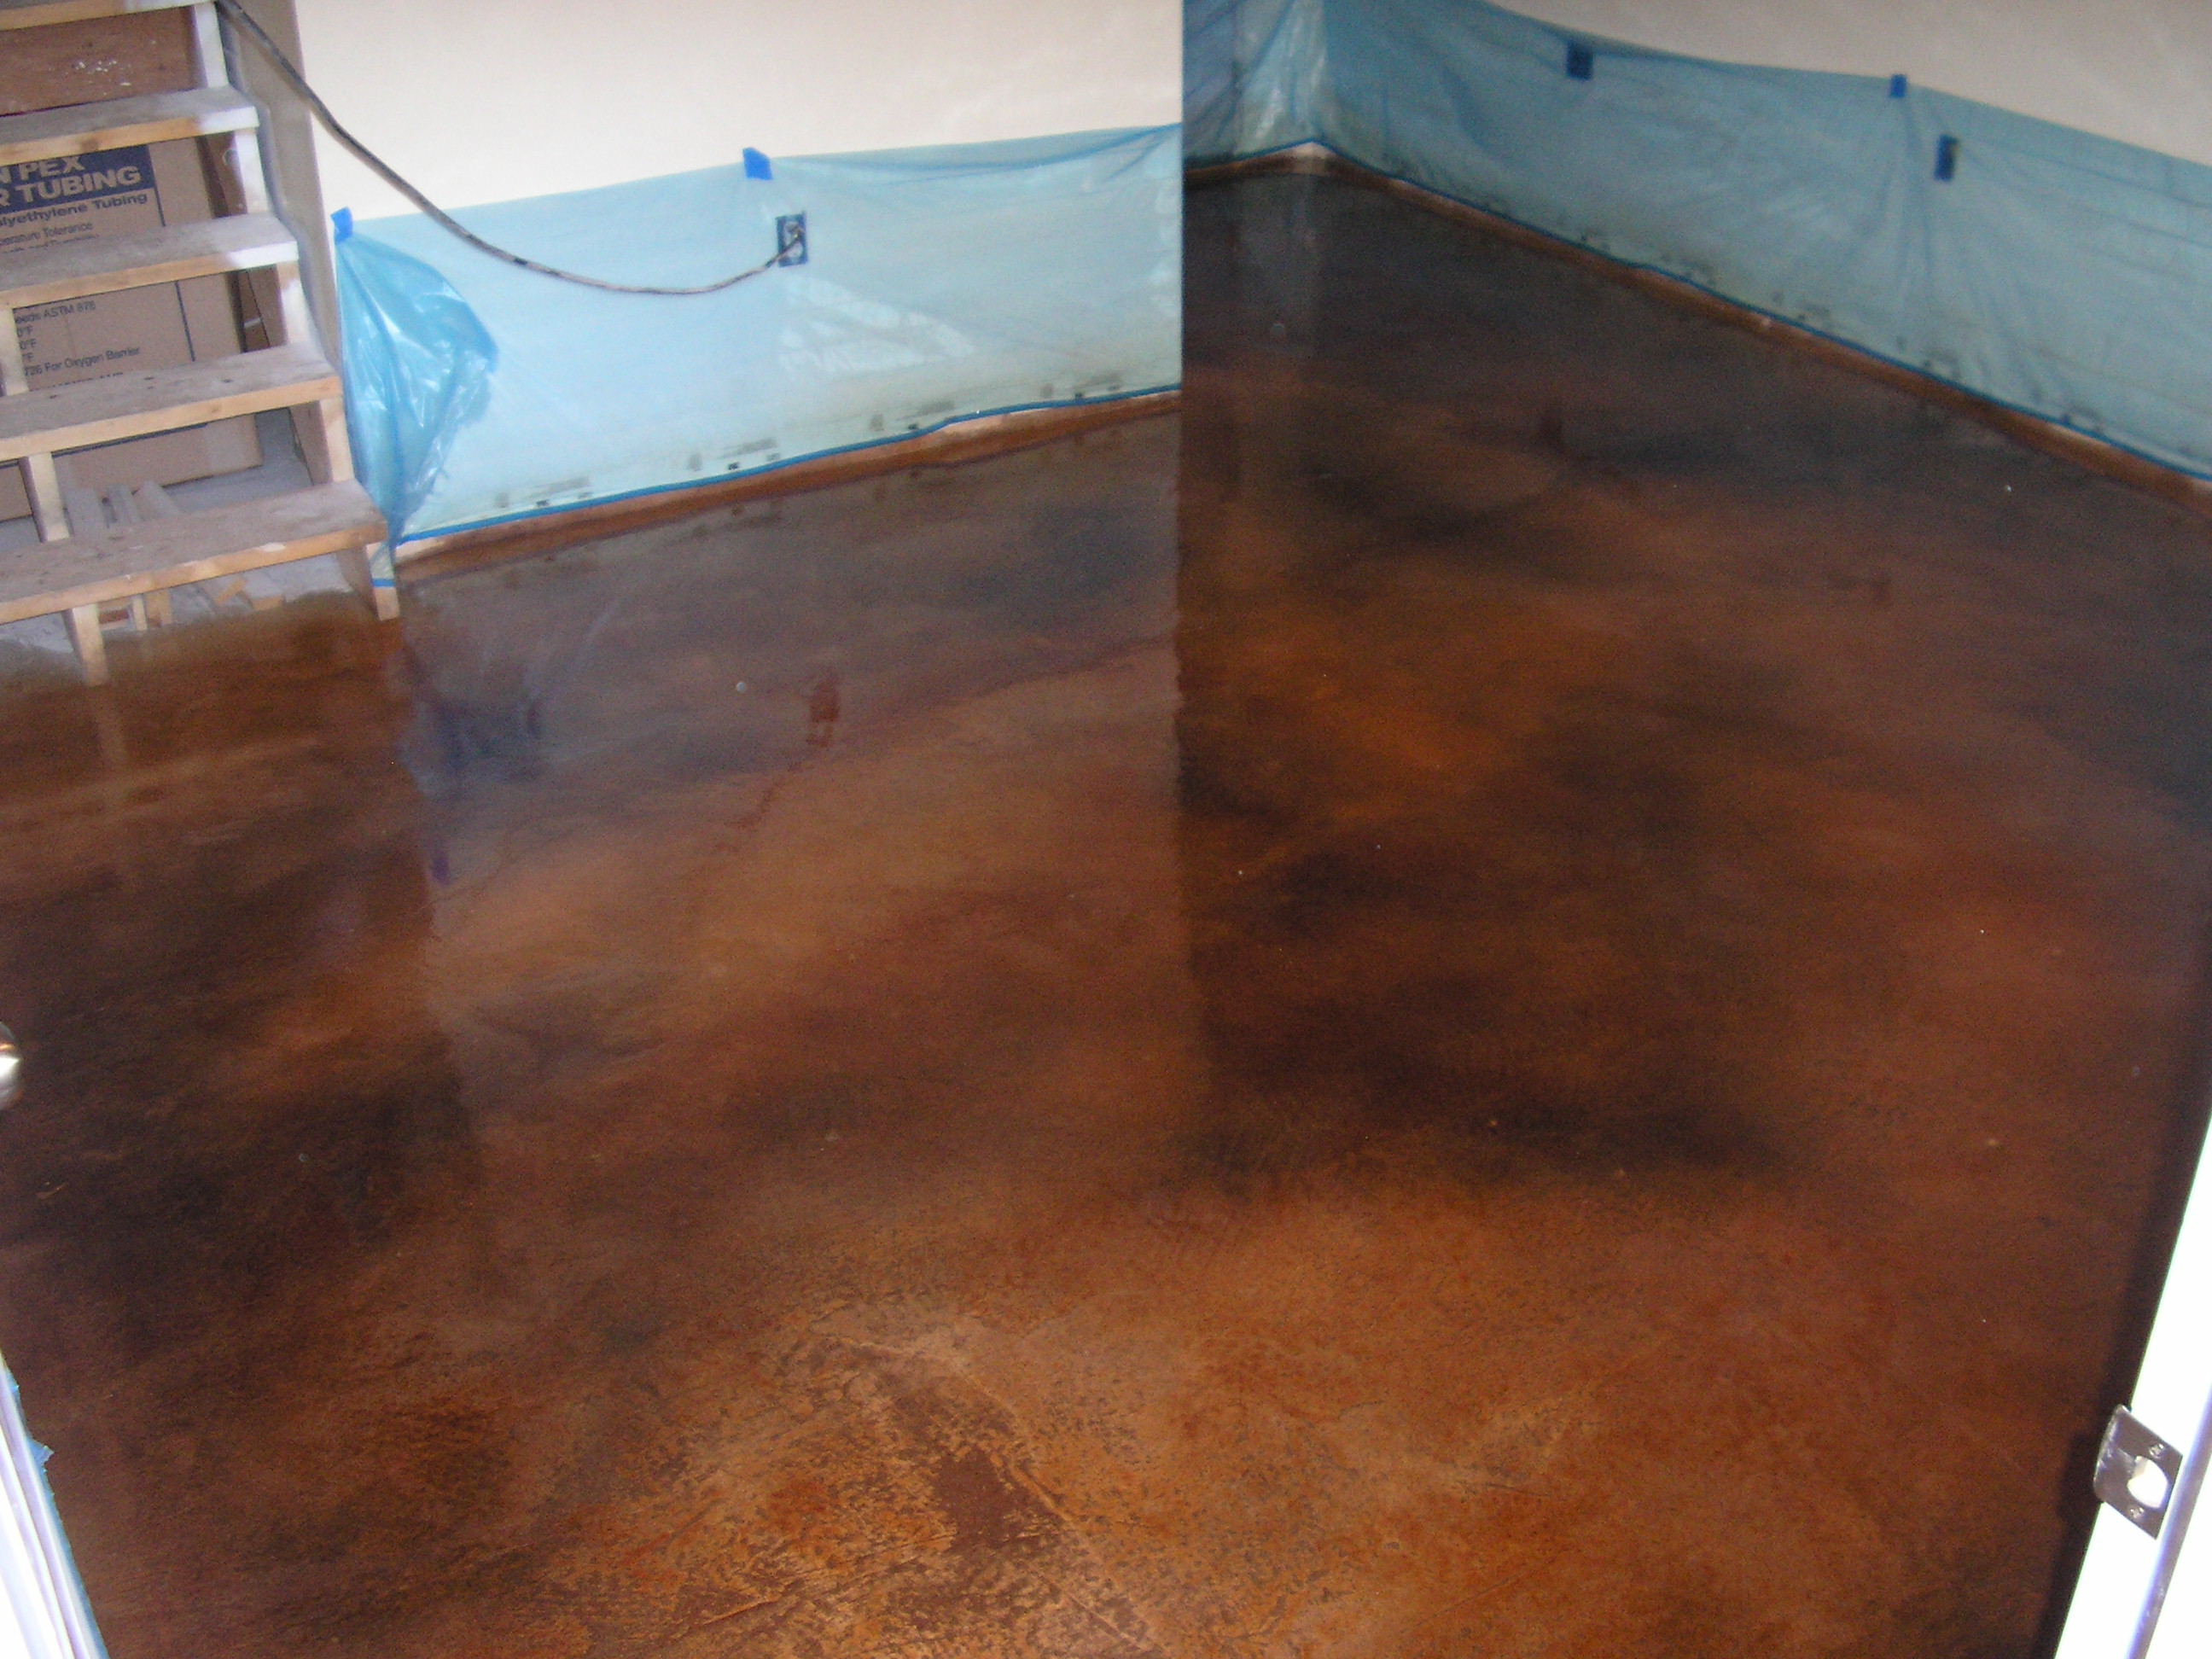 ... Kemiko floor stain meze blog for How to remove wax from stained concrete floors ... & How To Remove Wax From Stained Concrete Floors - 16 best images ...